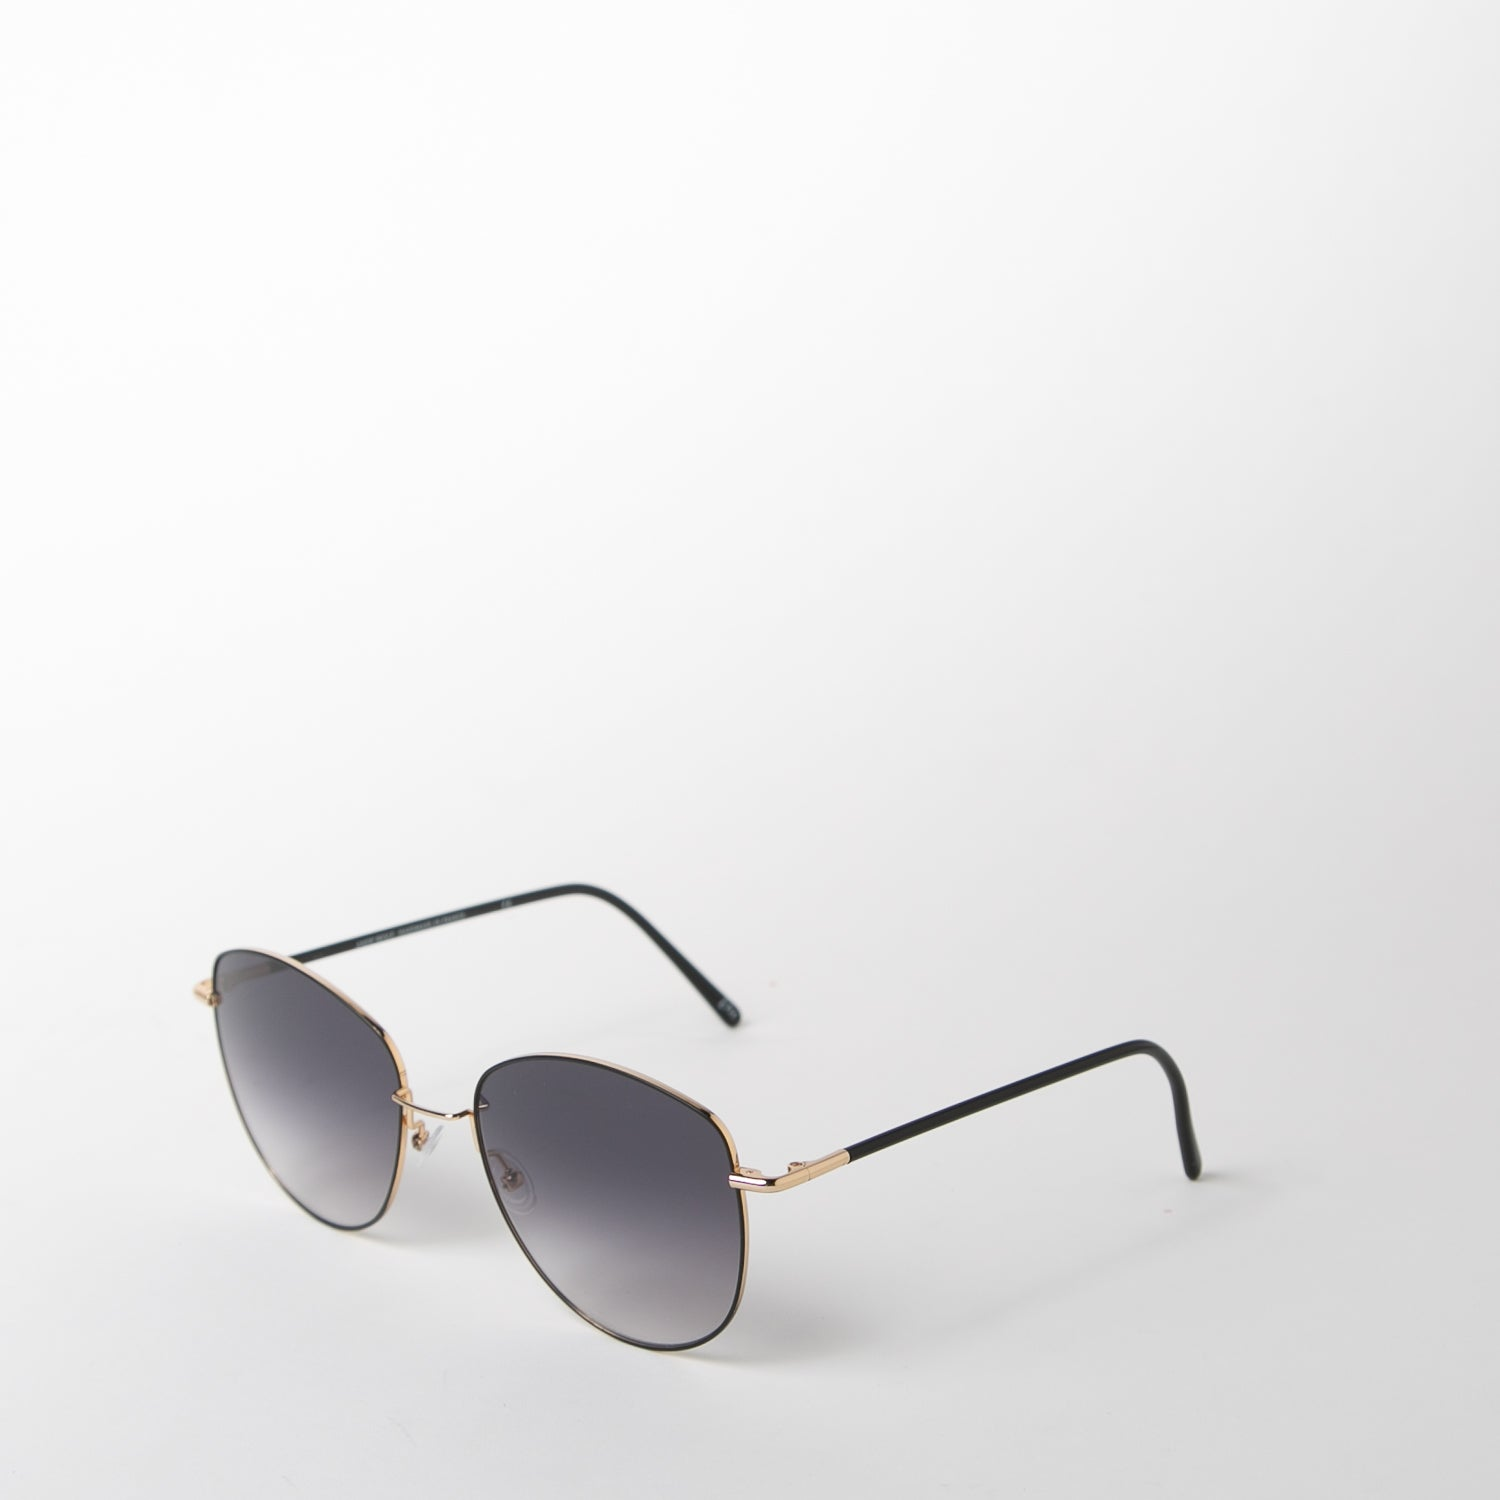 Mila Sunglasses, rose gold